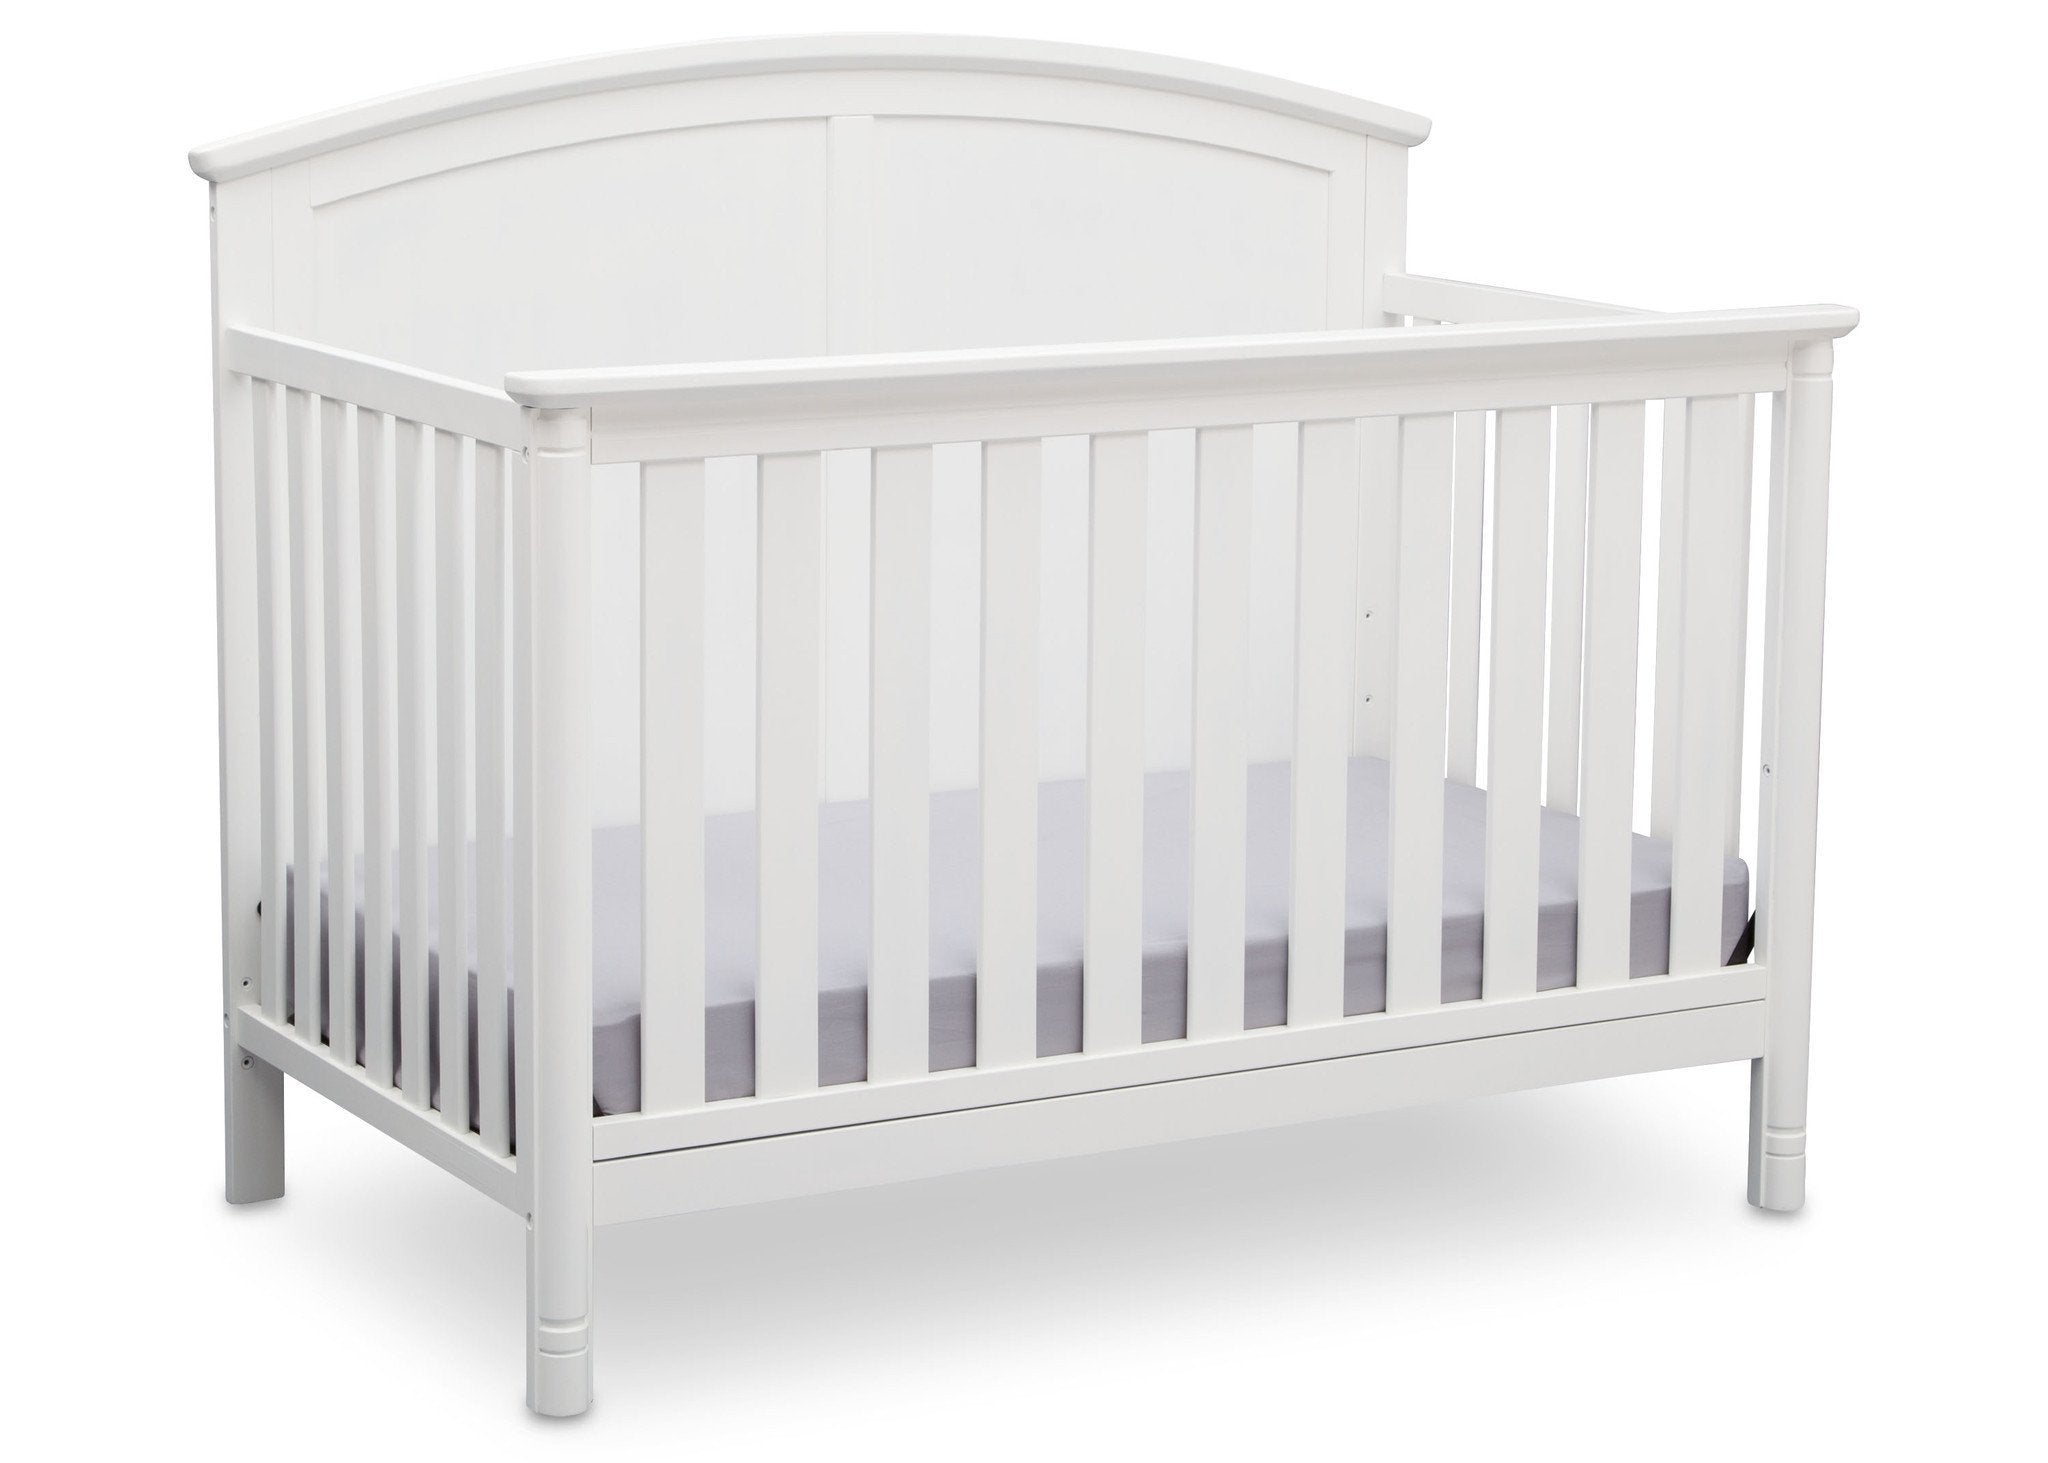 Delta Children White (100) Somerset 4-in-1 Crib Side View, Crib Conversion a3a